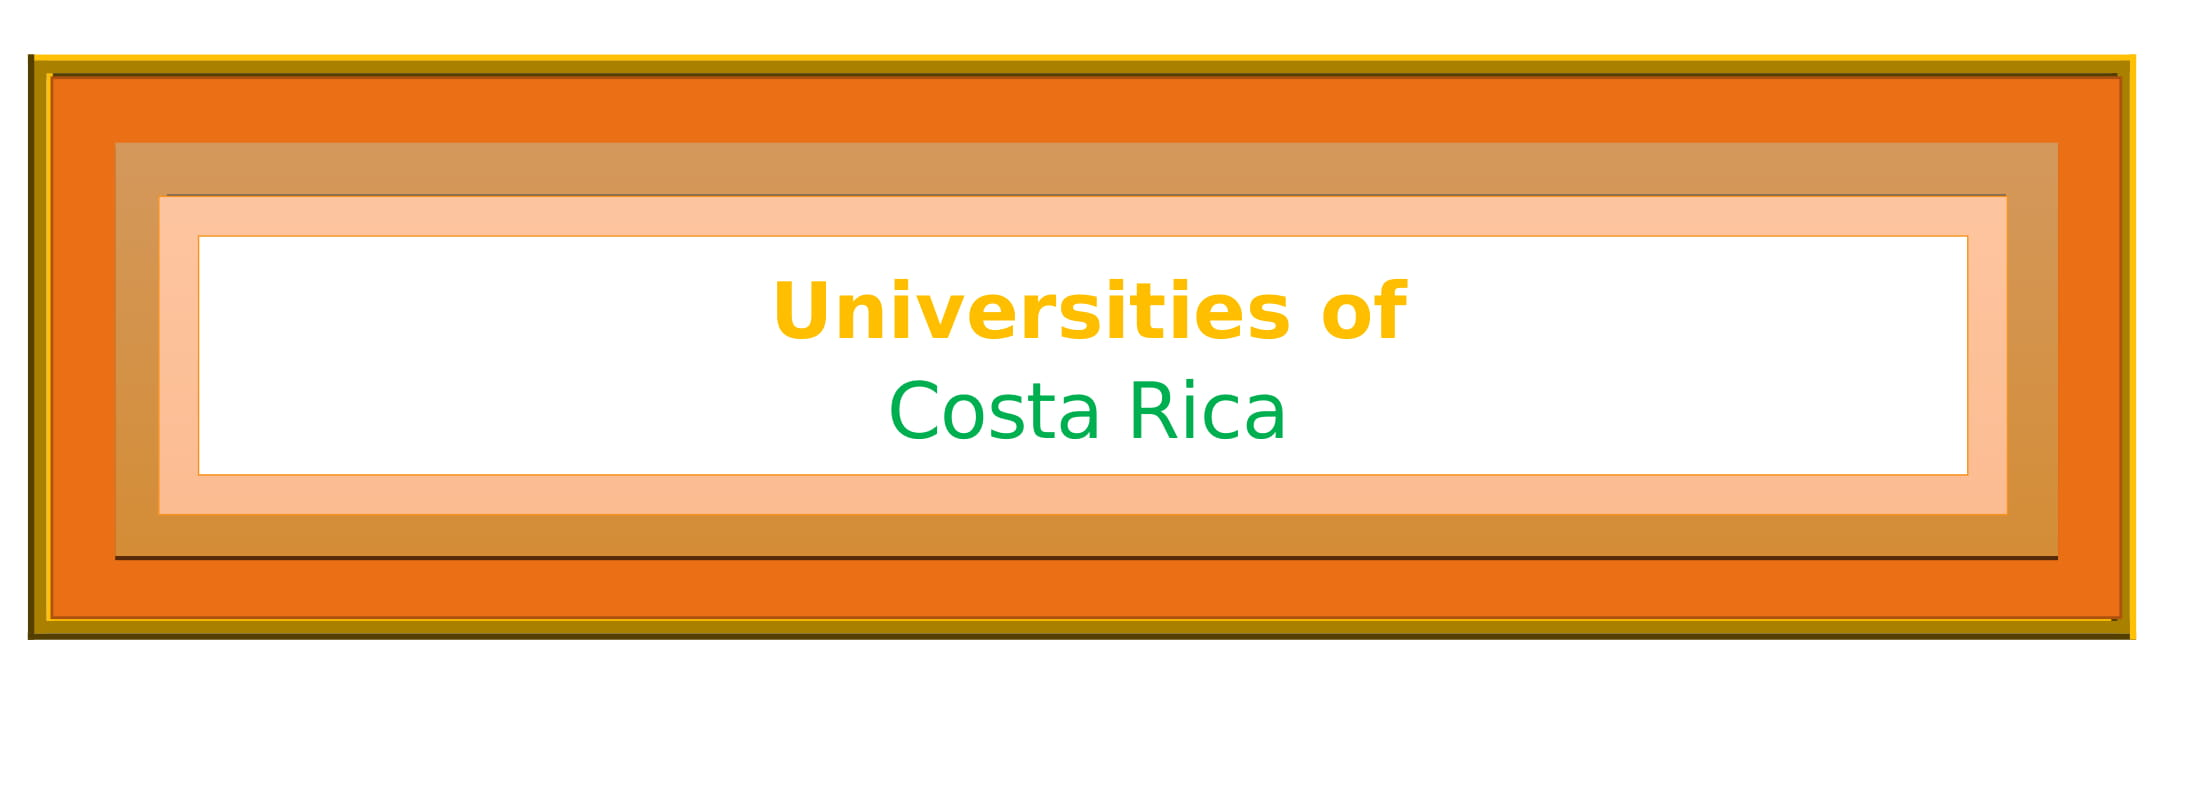 List of Universities in Costa Rica